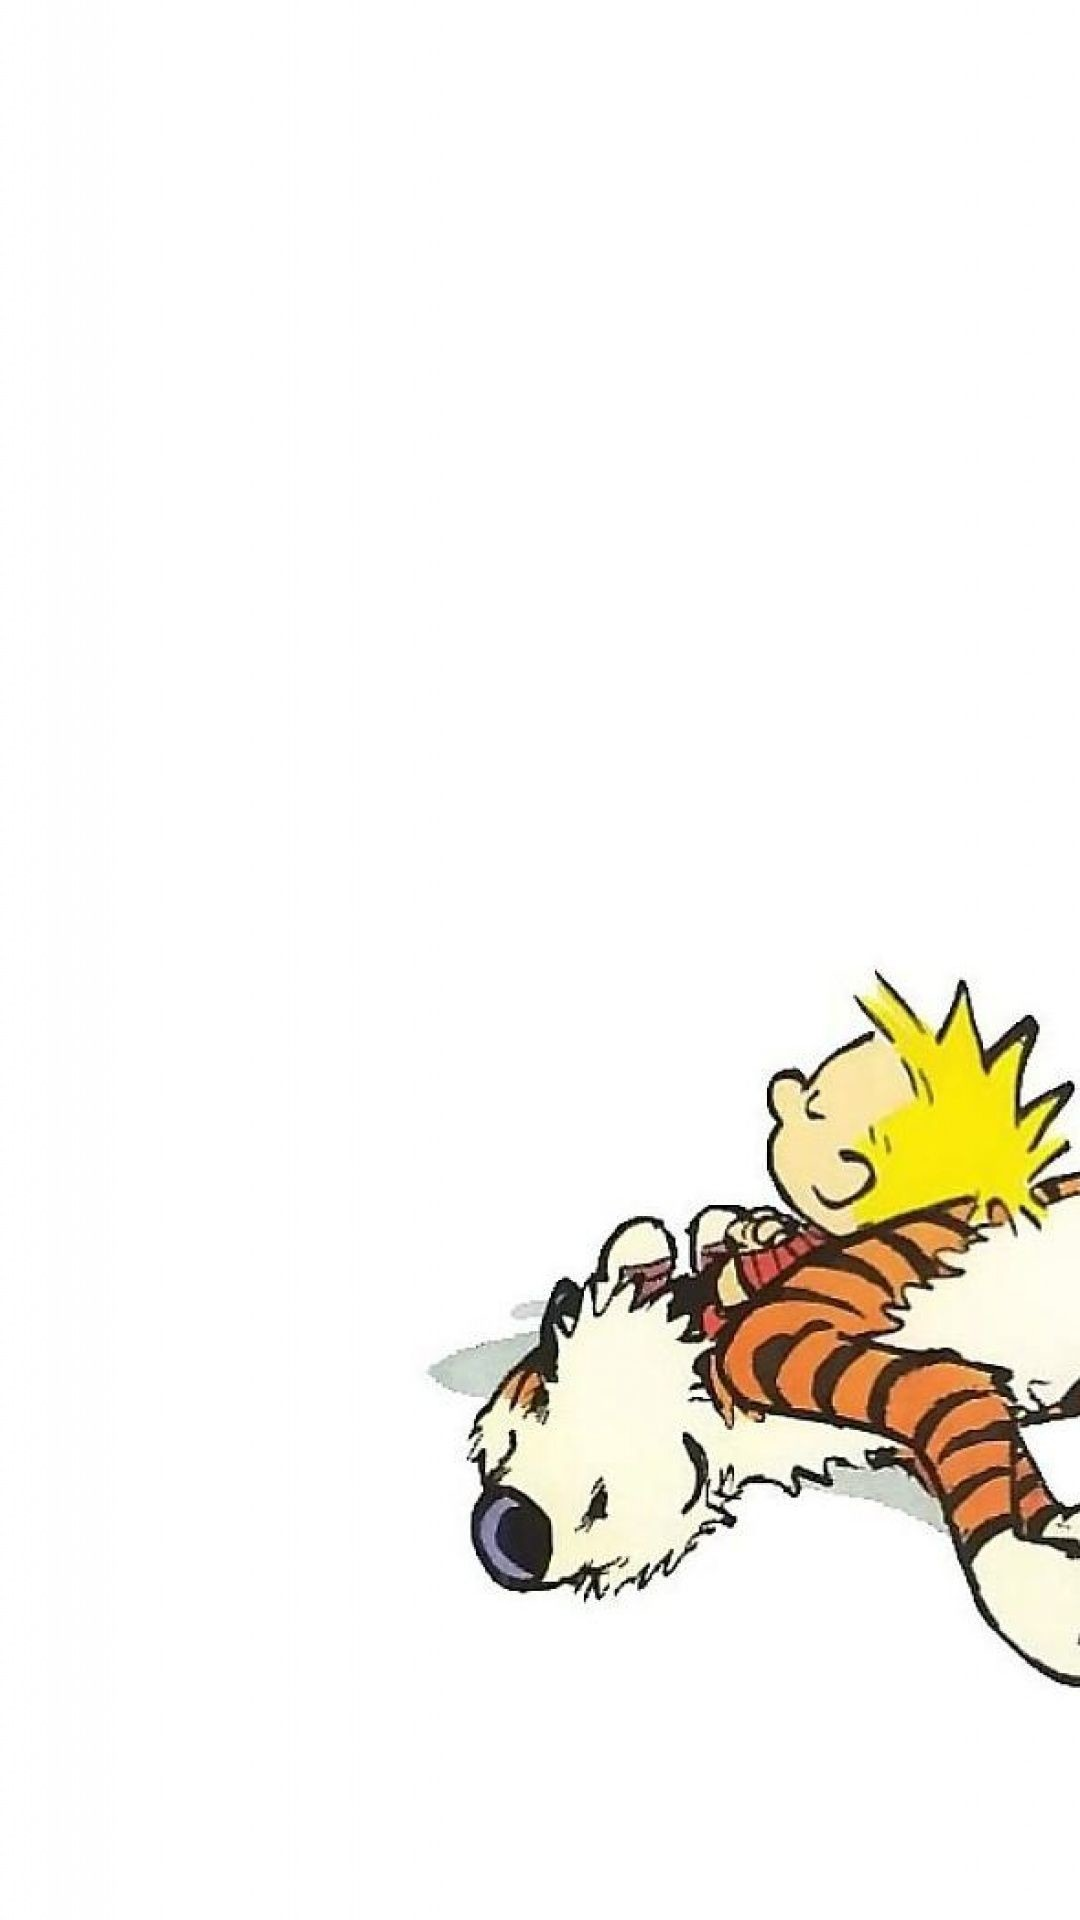 1080x1920 ... Calvin and hobbes 580+ Best iPhone Wallpapers iPhone Full HD Wallpapers,  Backgroun